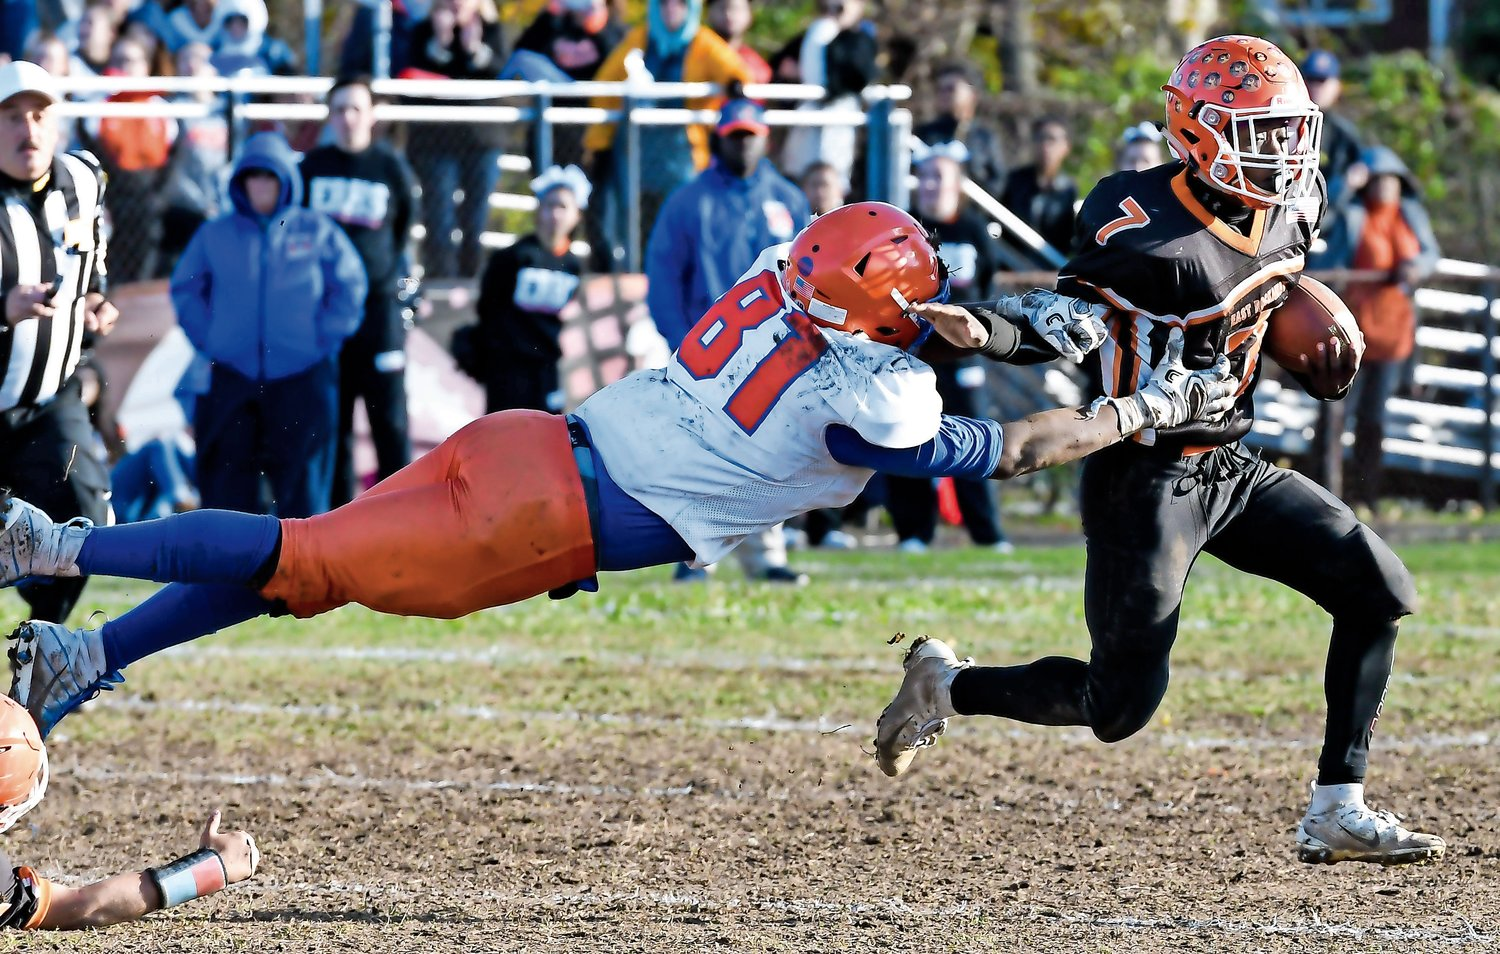 Malverne High School defensive end Jovani Duran, airborne above (on natural grass), won a competition sponsored by the LandTek Group for a video showcasing his pass-rushing skills.